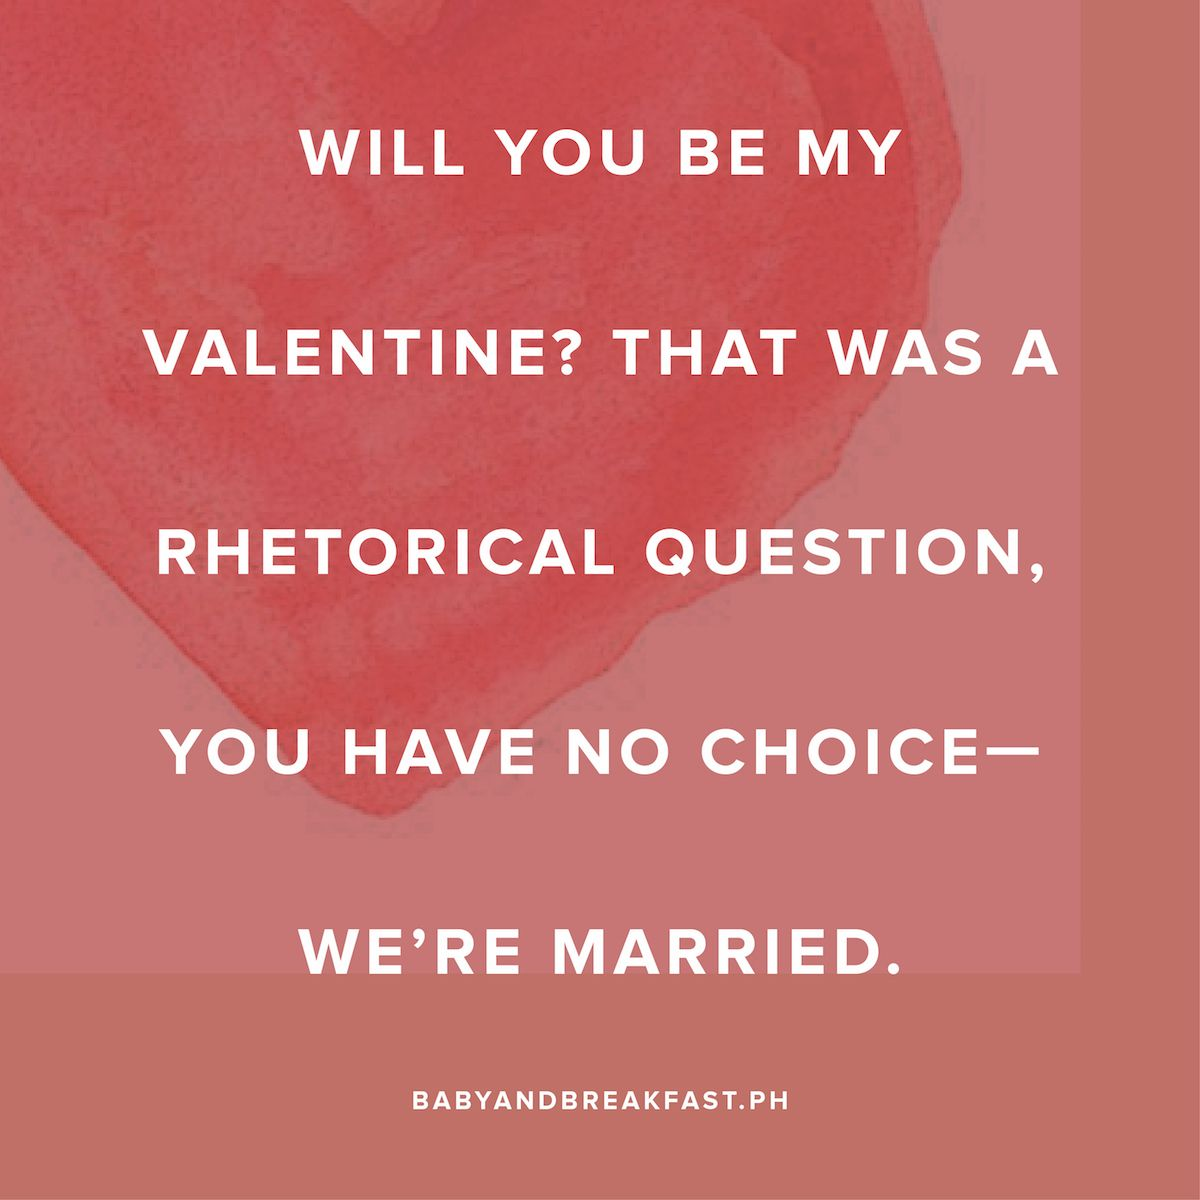 Funny Husband Valentines Quotes Pinterest thumbnail